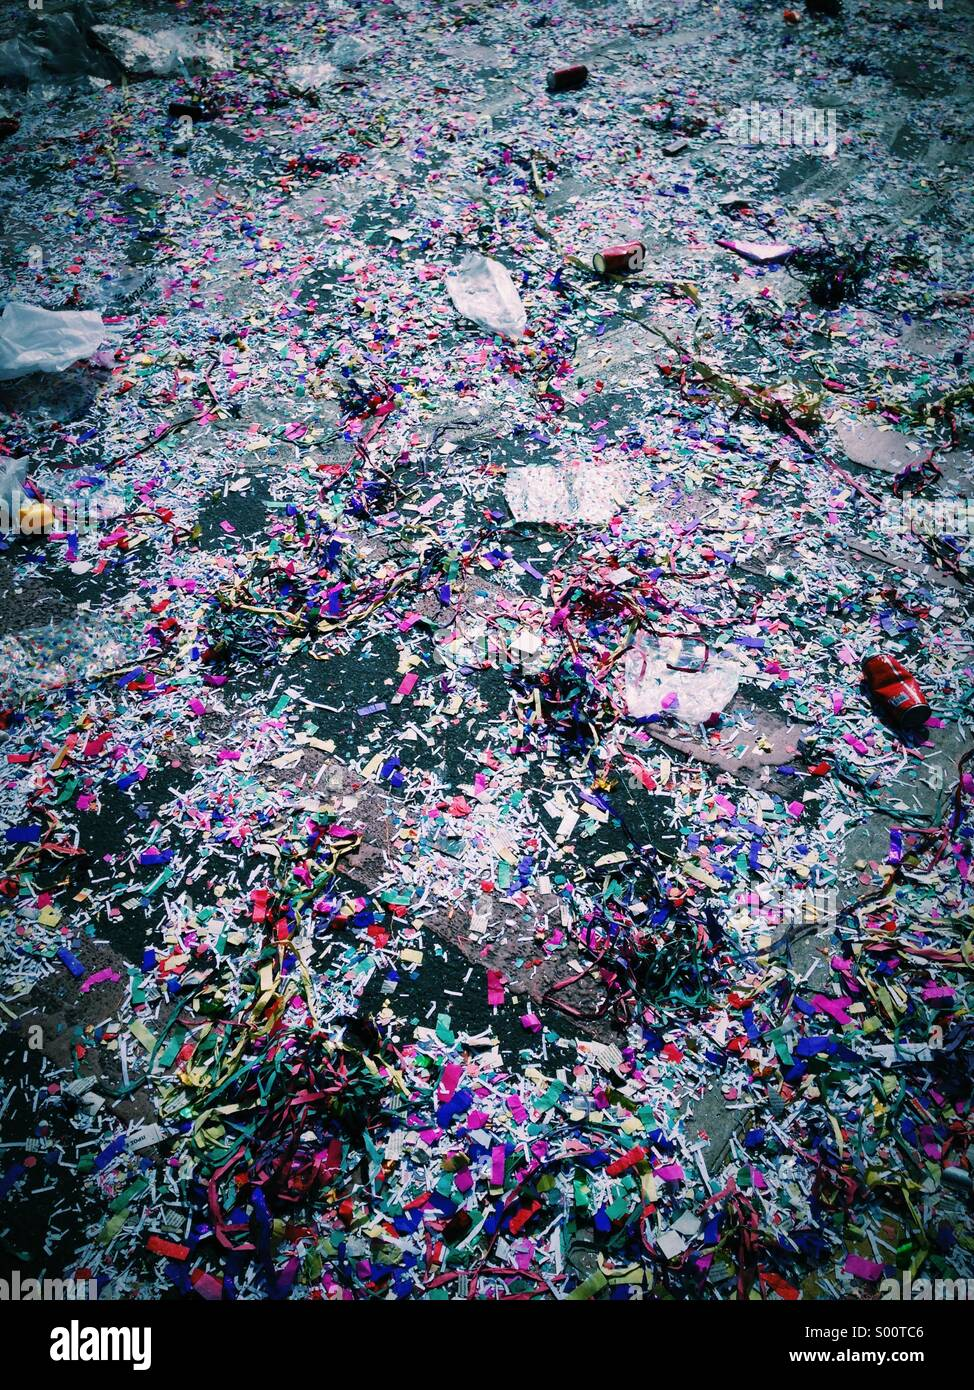 Confetti and streamers covering the street after a carnival - Stock Image